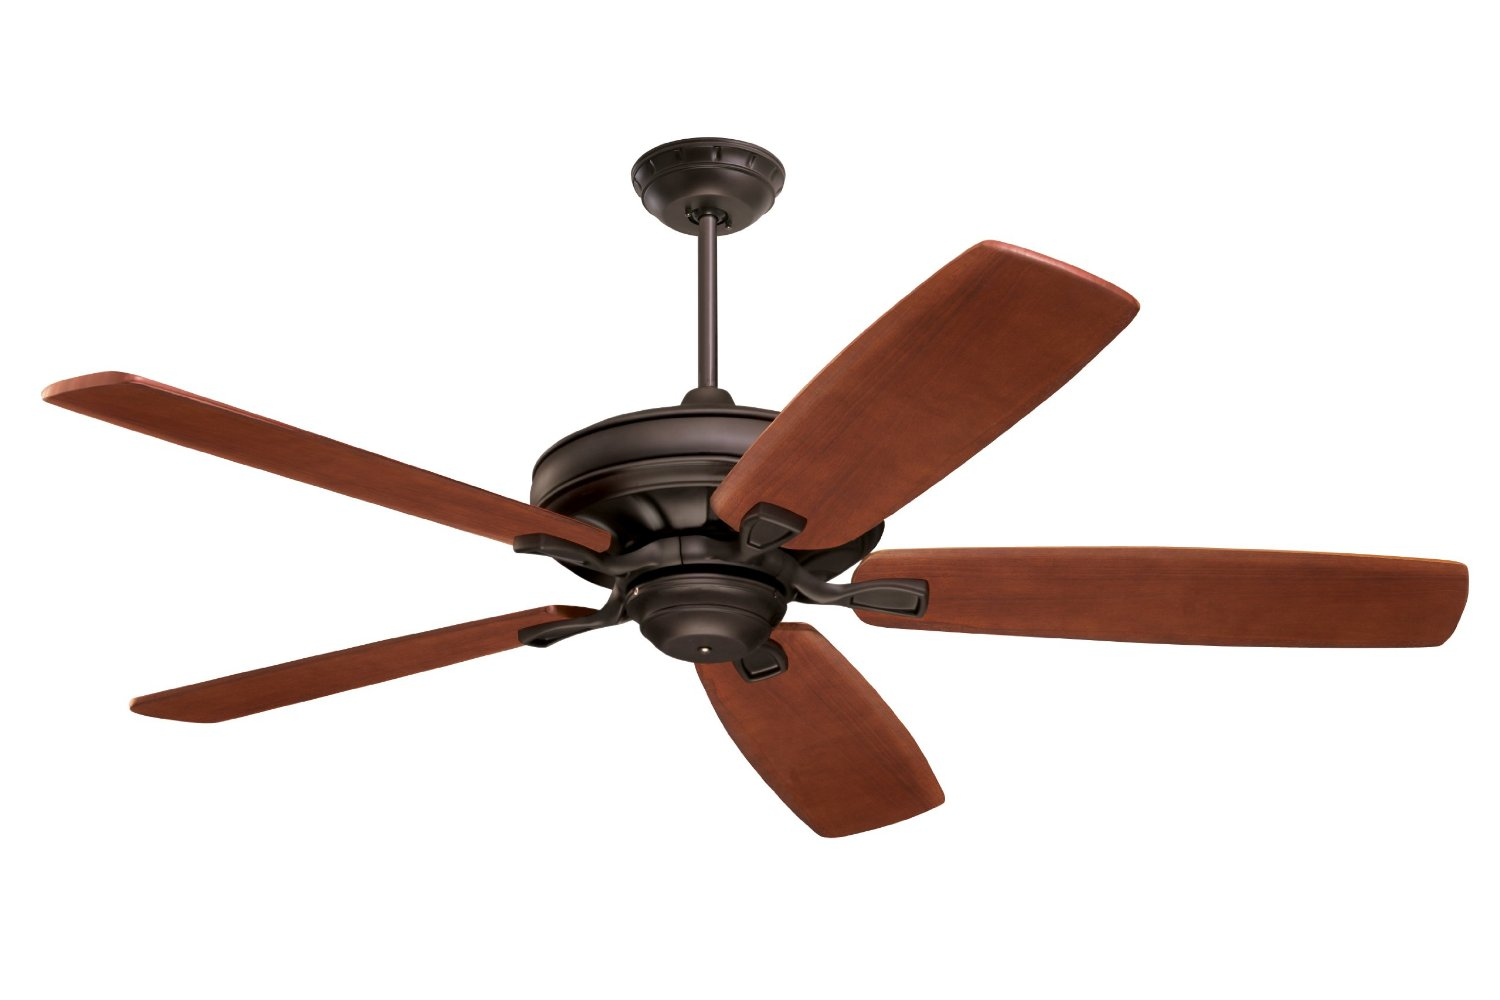 Emerson Carrera Grande Eco Indoor Outdoor Ceiling Fan With 6-Speed Wall Control